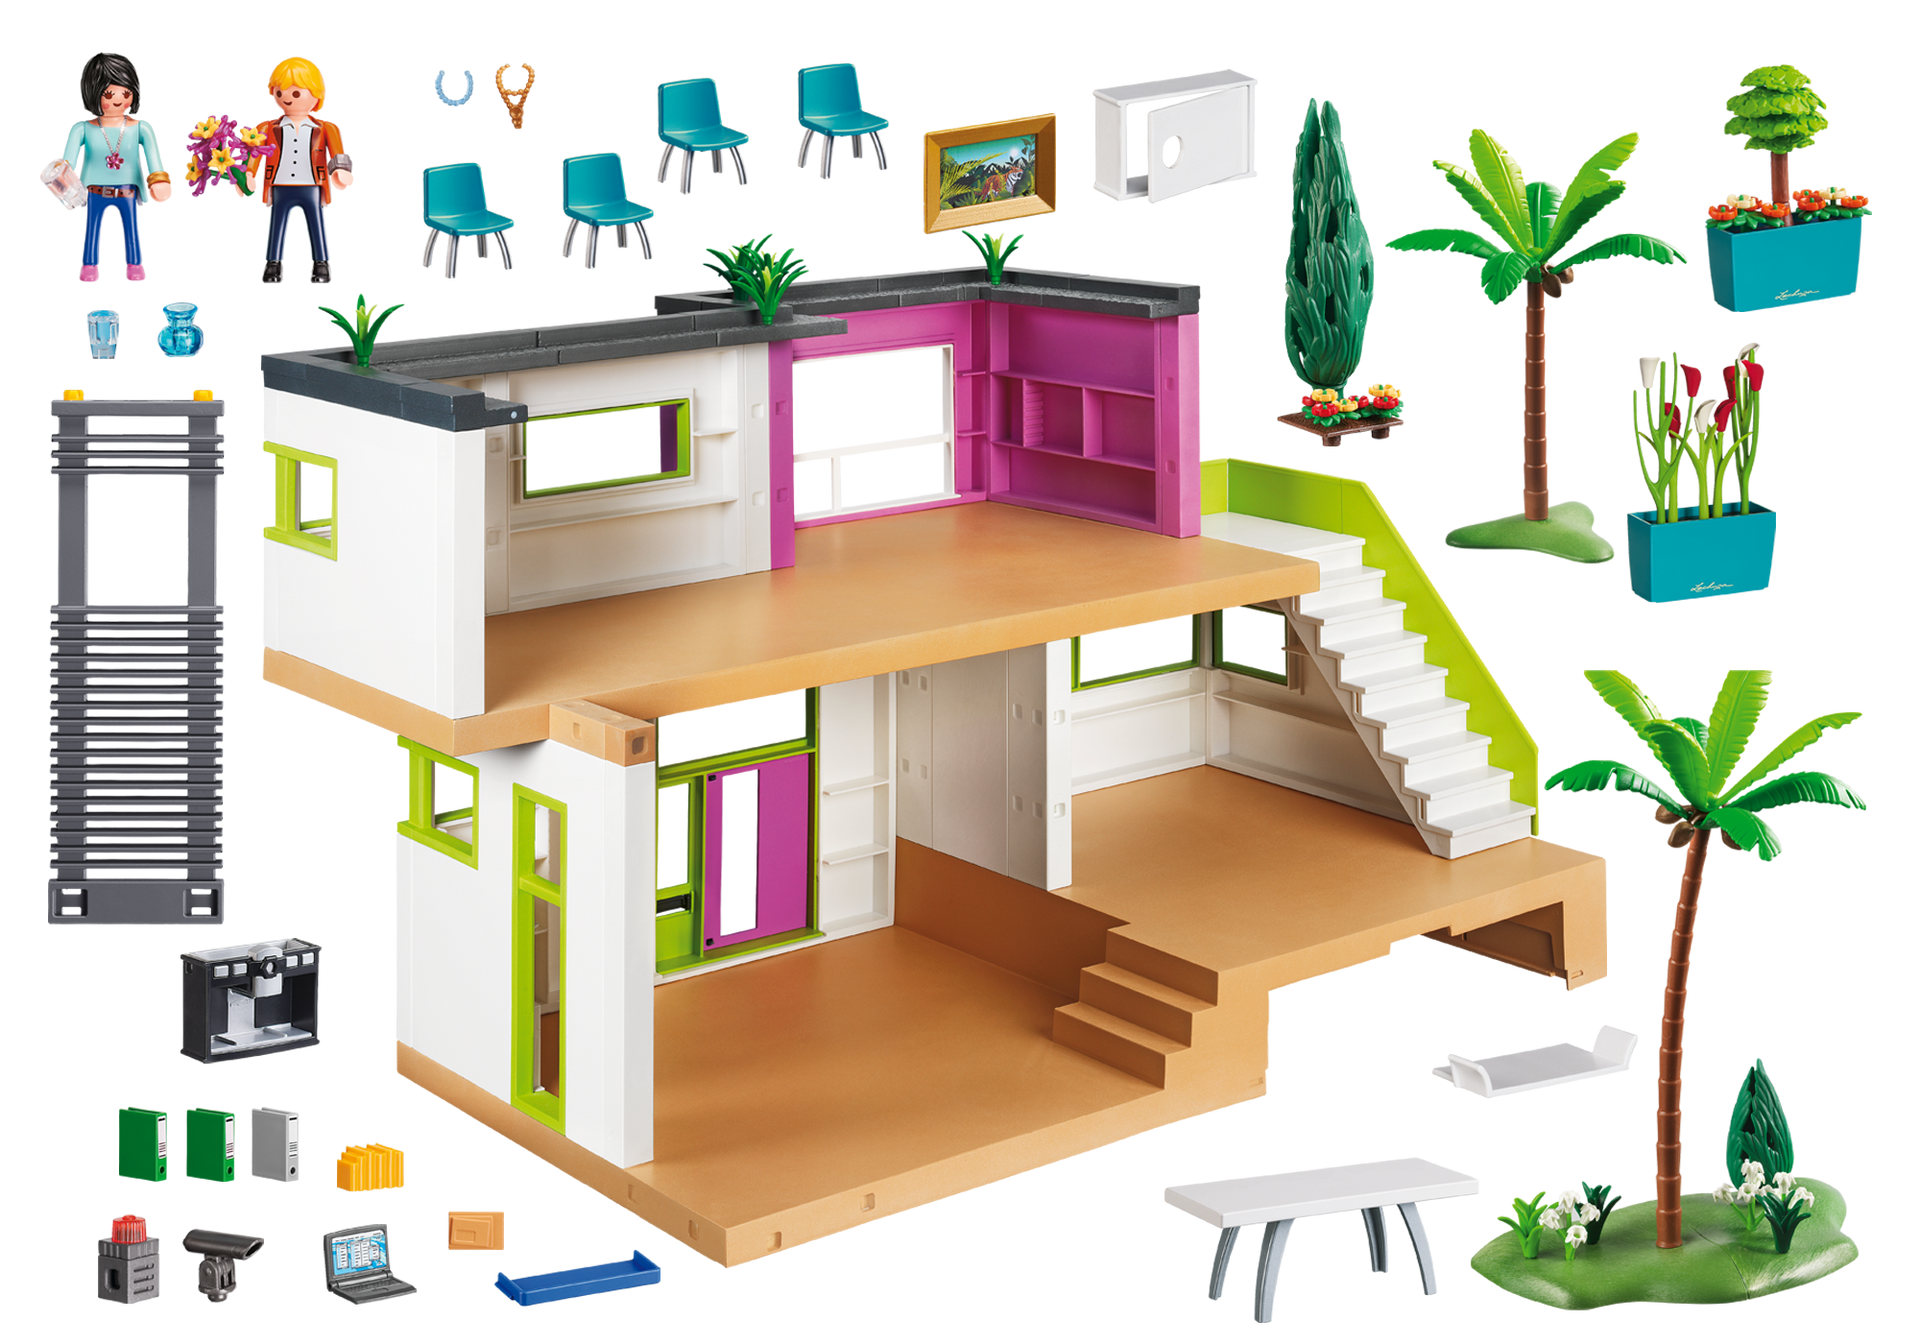 Playmobil City Life Luxusvilla Download This Picture Here Playmobil ...